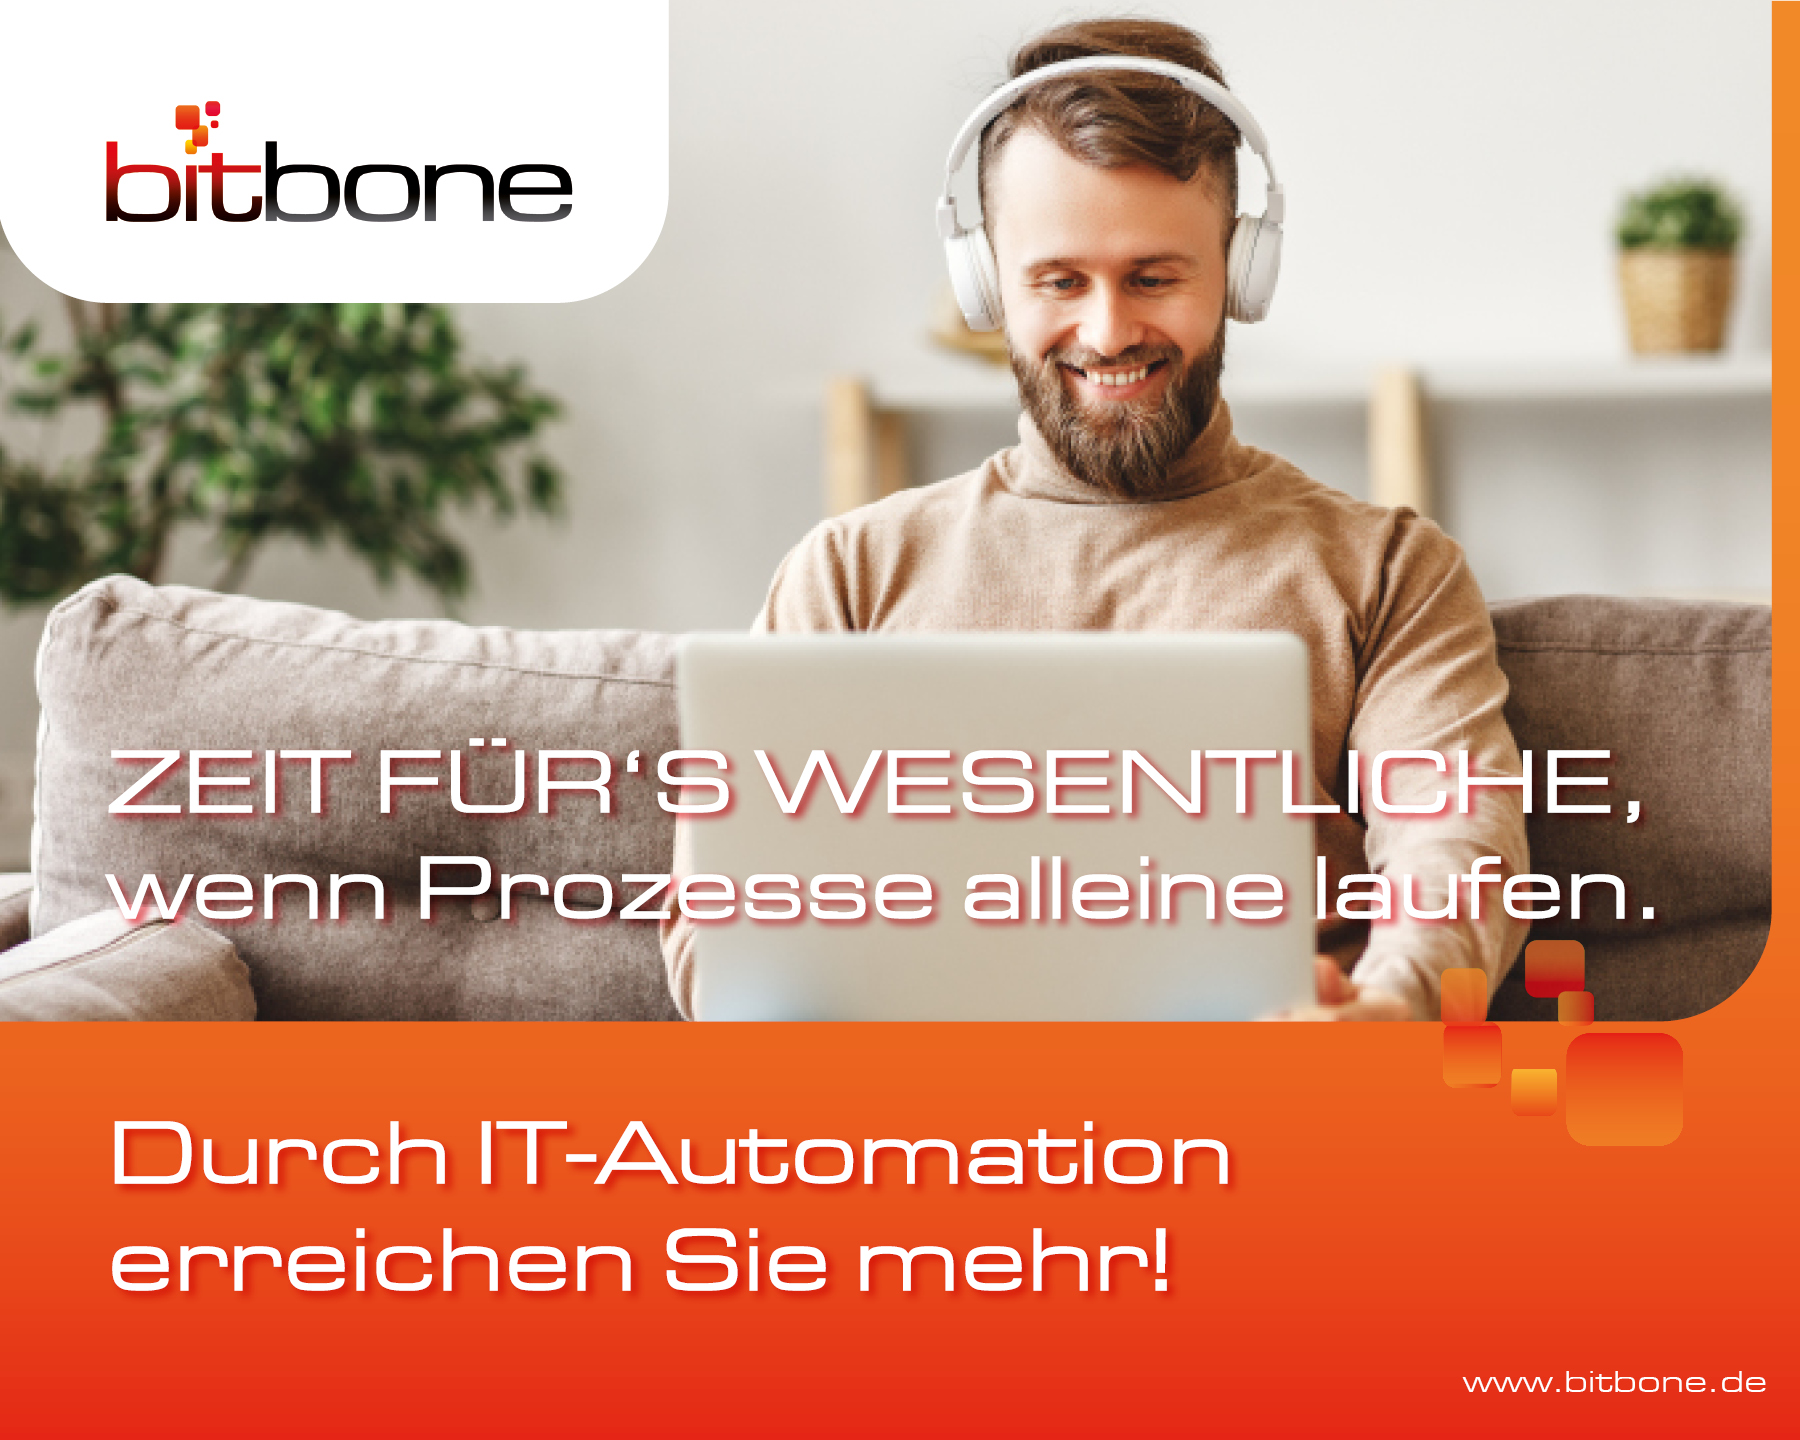 Picture with man in front of computer. Text says: You can achieve more with IT automation!